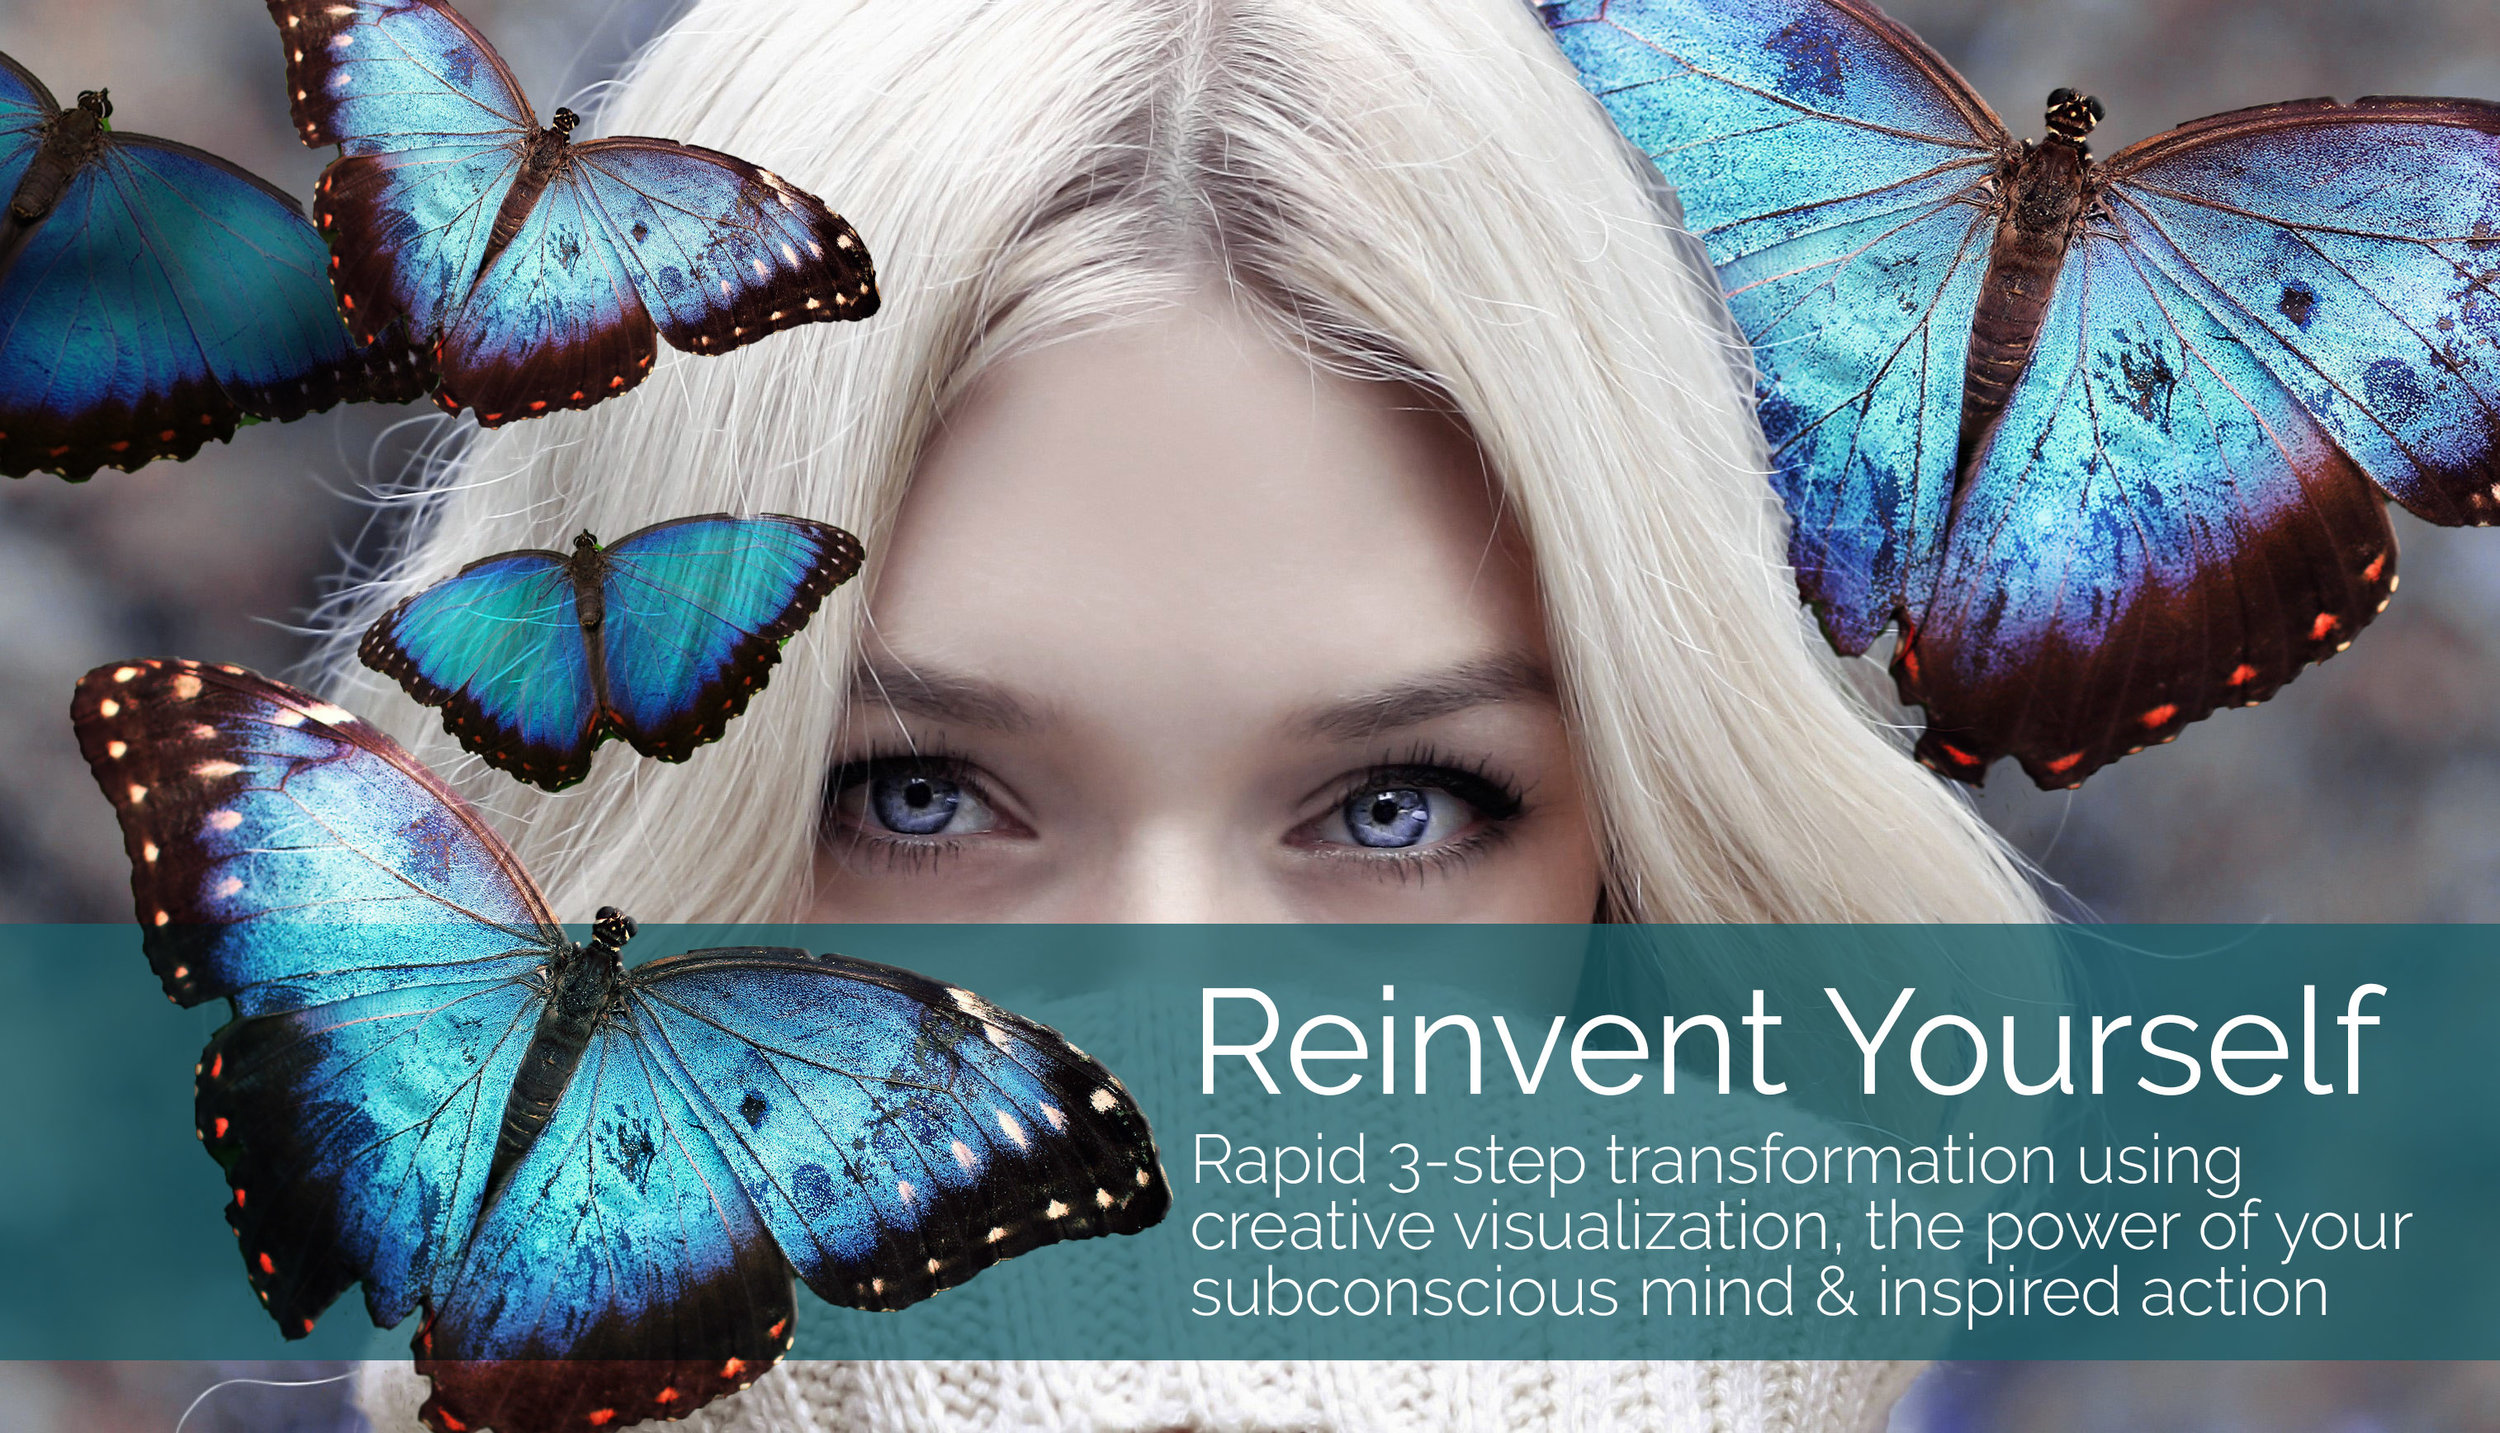 Enroll today  in Reinvent Yourself